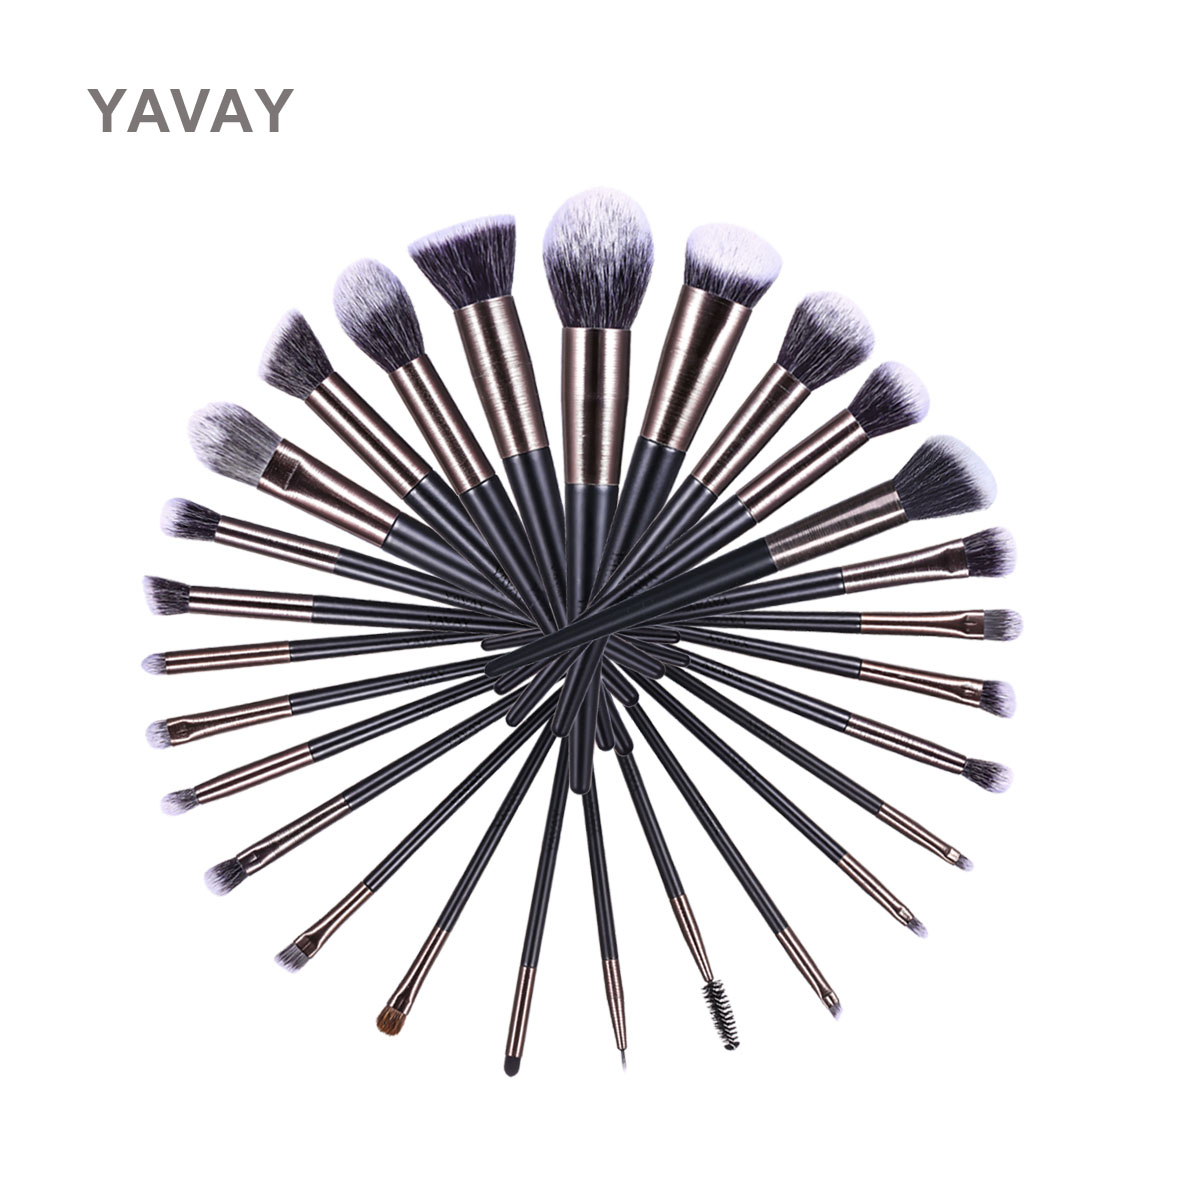 YAVAY Brand 27pieces/lots Black Makeup Brushes Set for Women Cosmetic Tool Nylon Hair Brushes Wood Handle Professional Brushes fc32003 portable 32 in 1 cosmetic makeup brushes set black